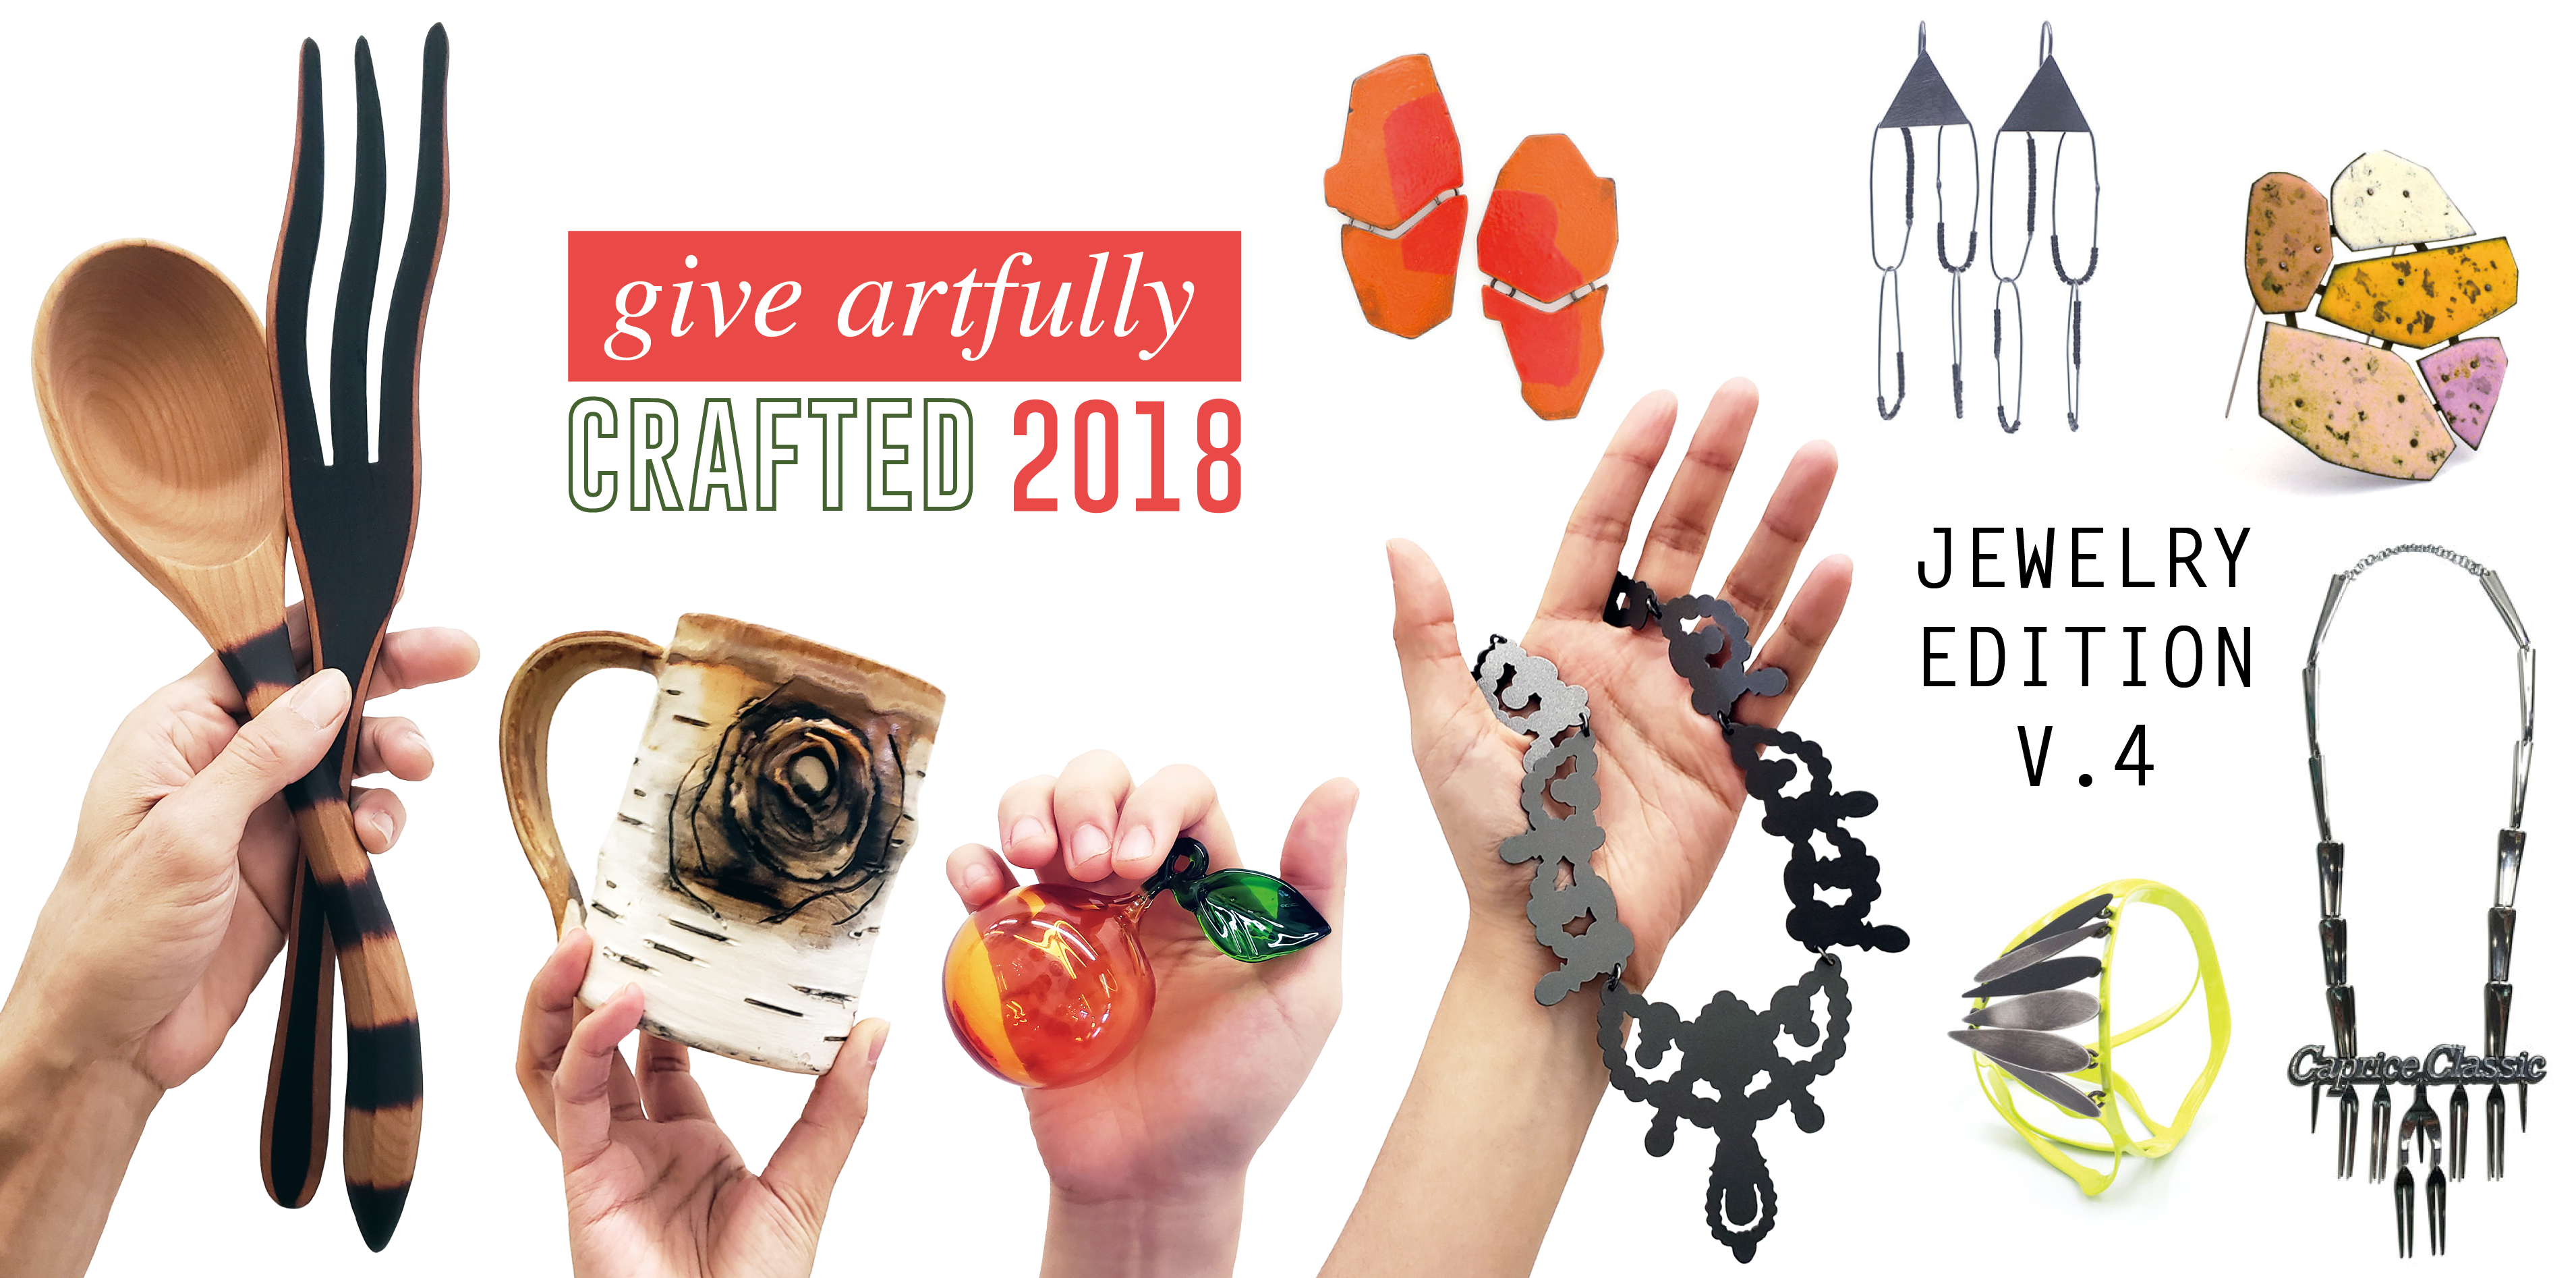 Give artfully this holiday with CRAFTED and JEWELRY EDITION!